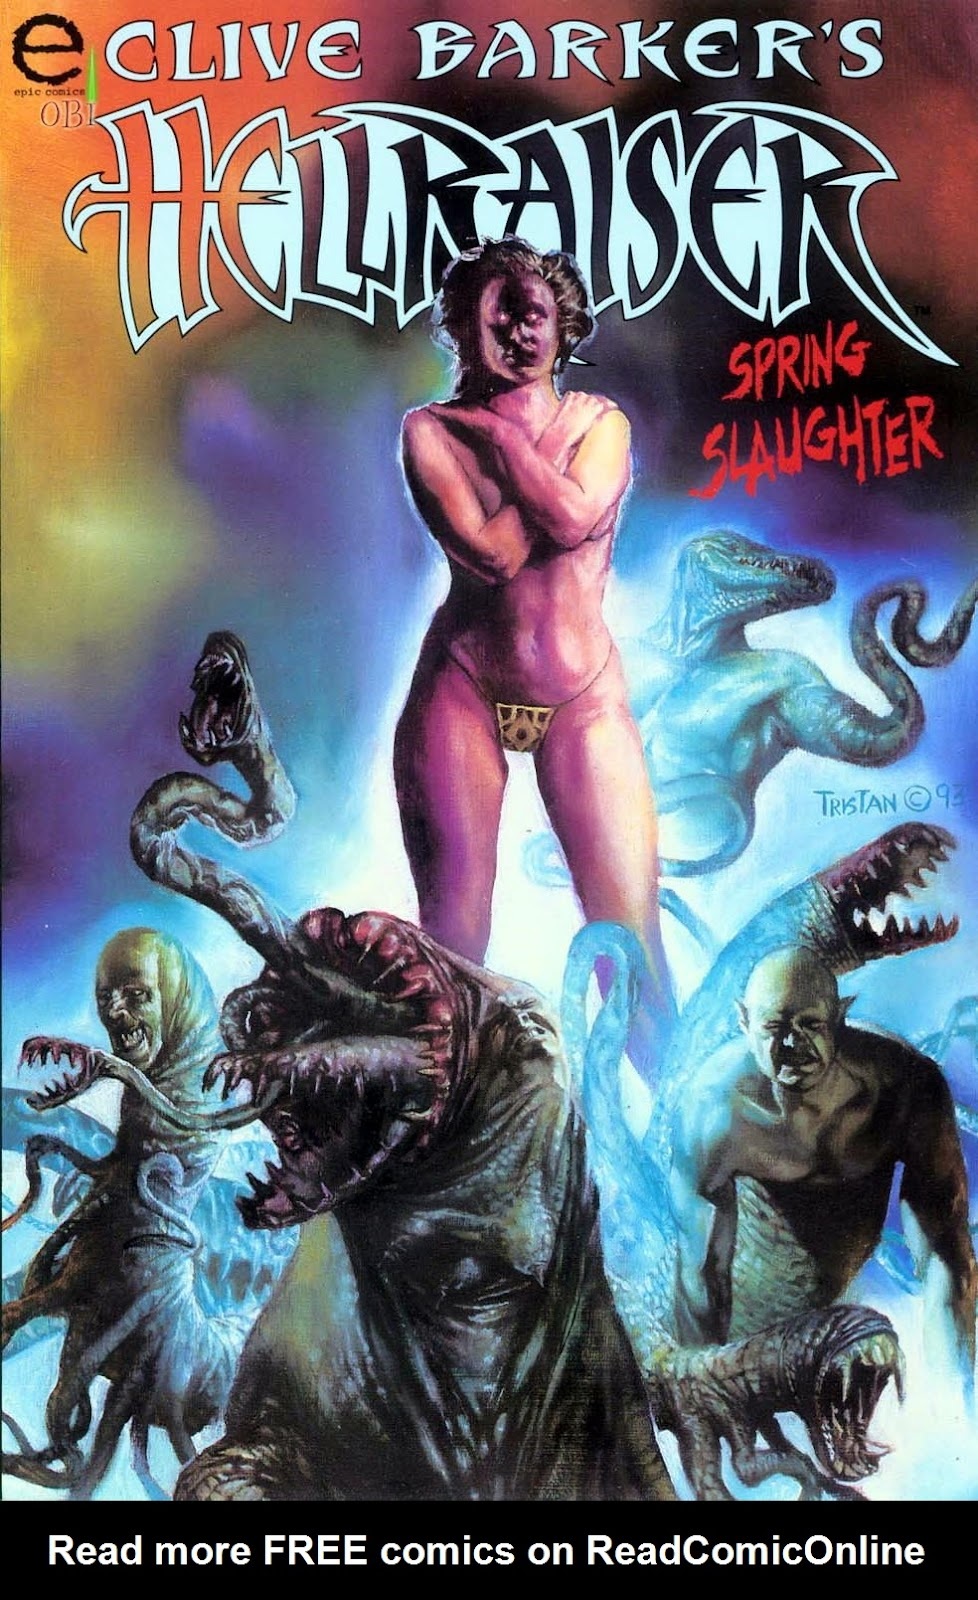 Clive Barkers Hellraiser Spring Slaughter Full Page 1